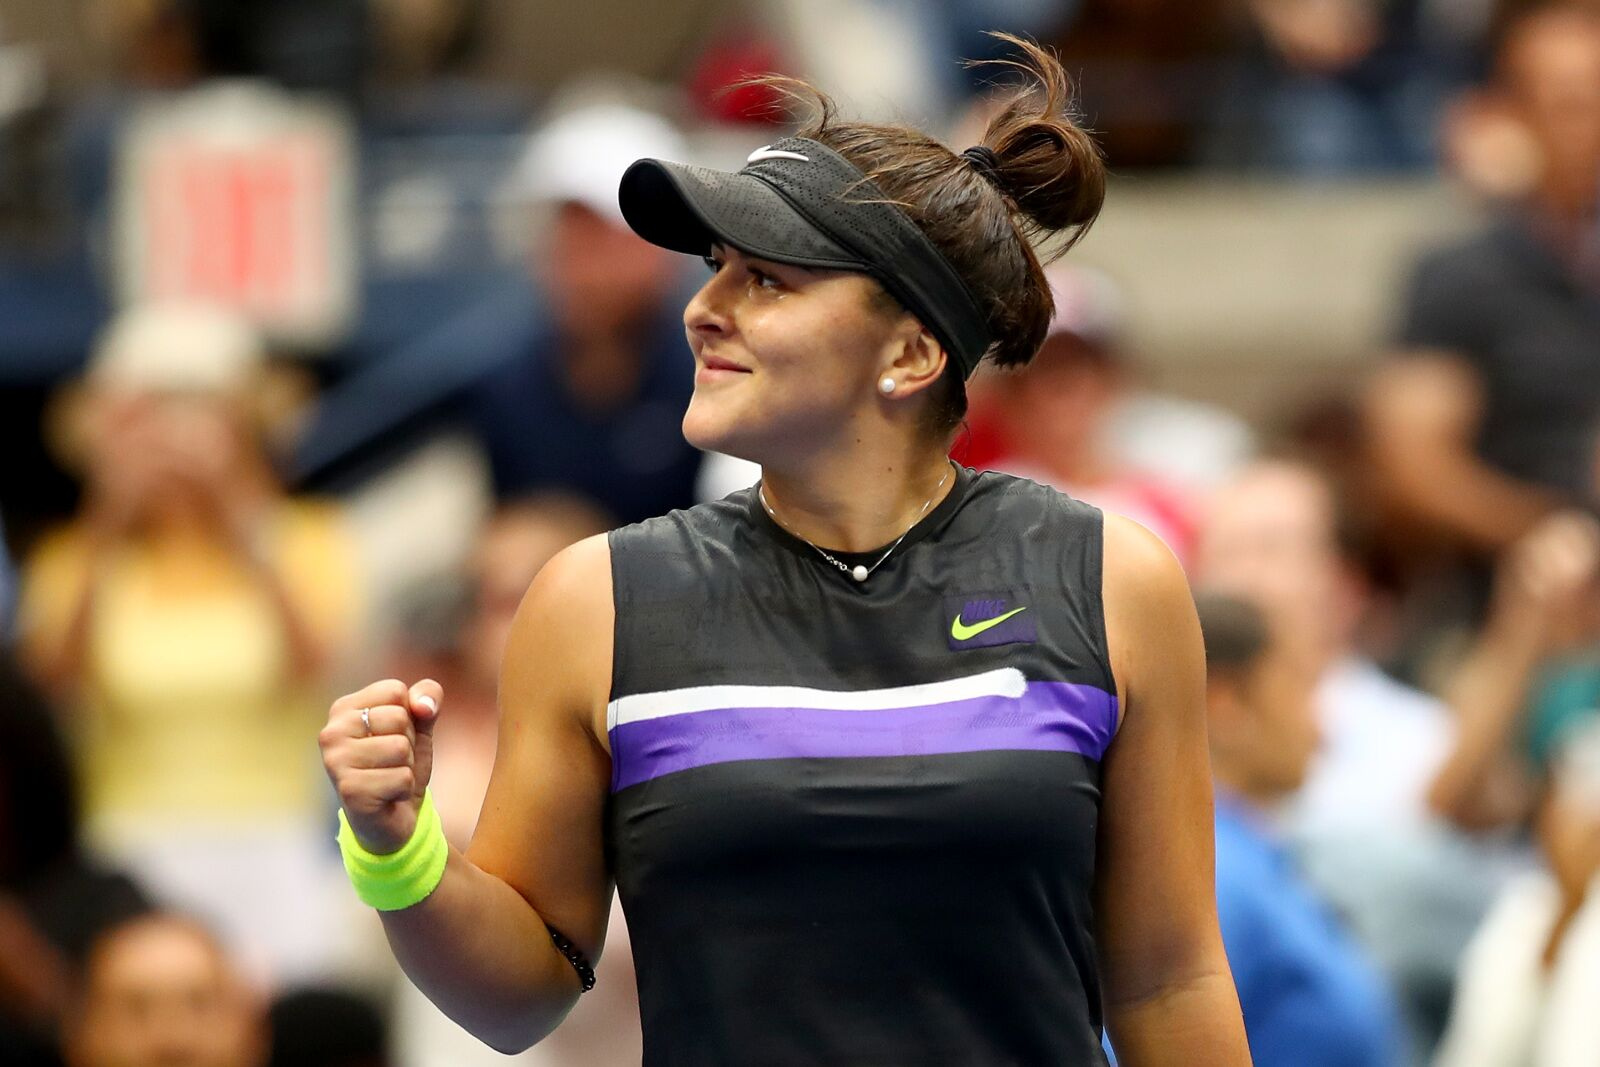 Bianca Andreescu sees off Coco Gauff to win WTA Newcomer of the Year